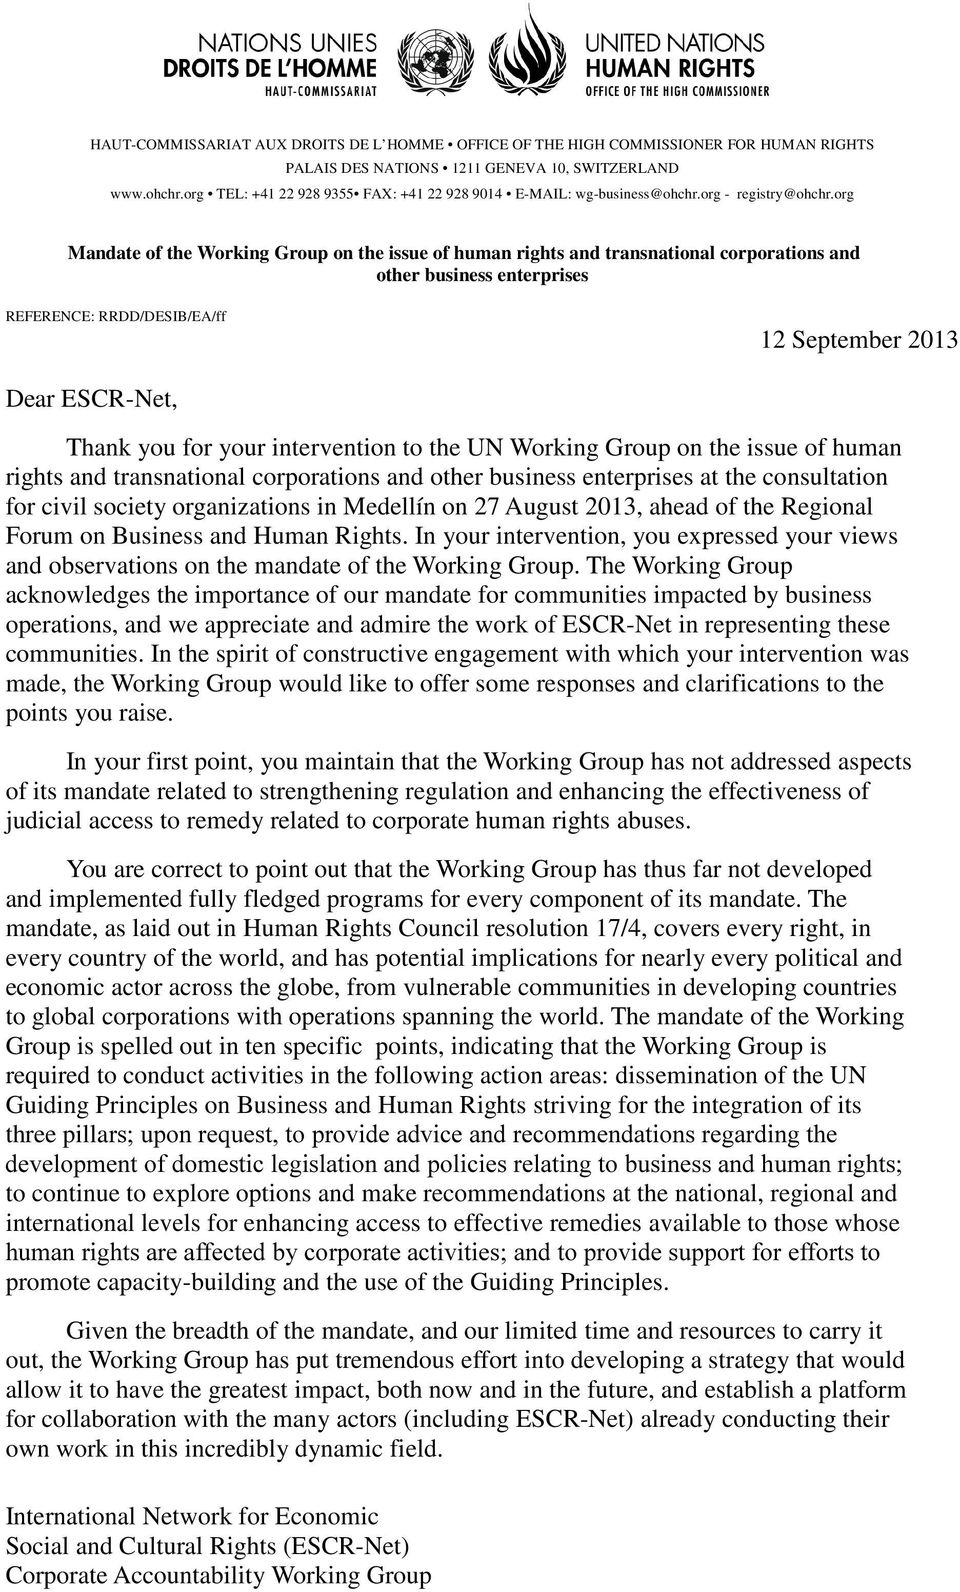 org Mandate of the Working Group on the issue of human rights and transnational corporations and other business enterprises REFERENCE: RRDD/DESIB/EA/ff 12 September 2013 Dear ESCR-Net, Thank you for